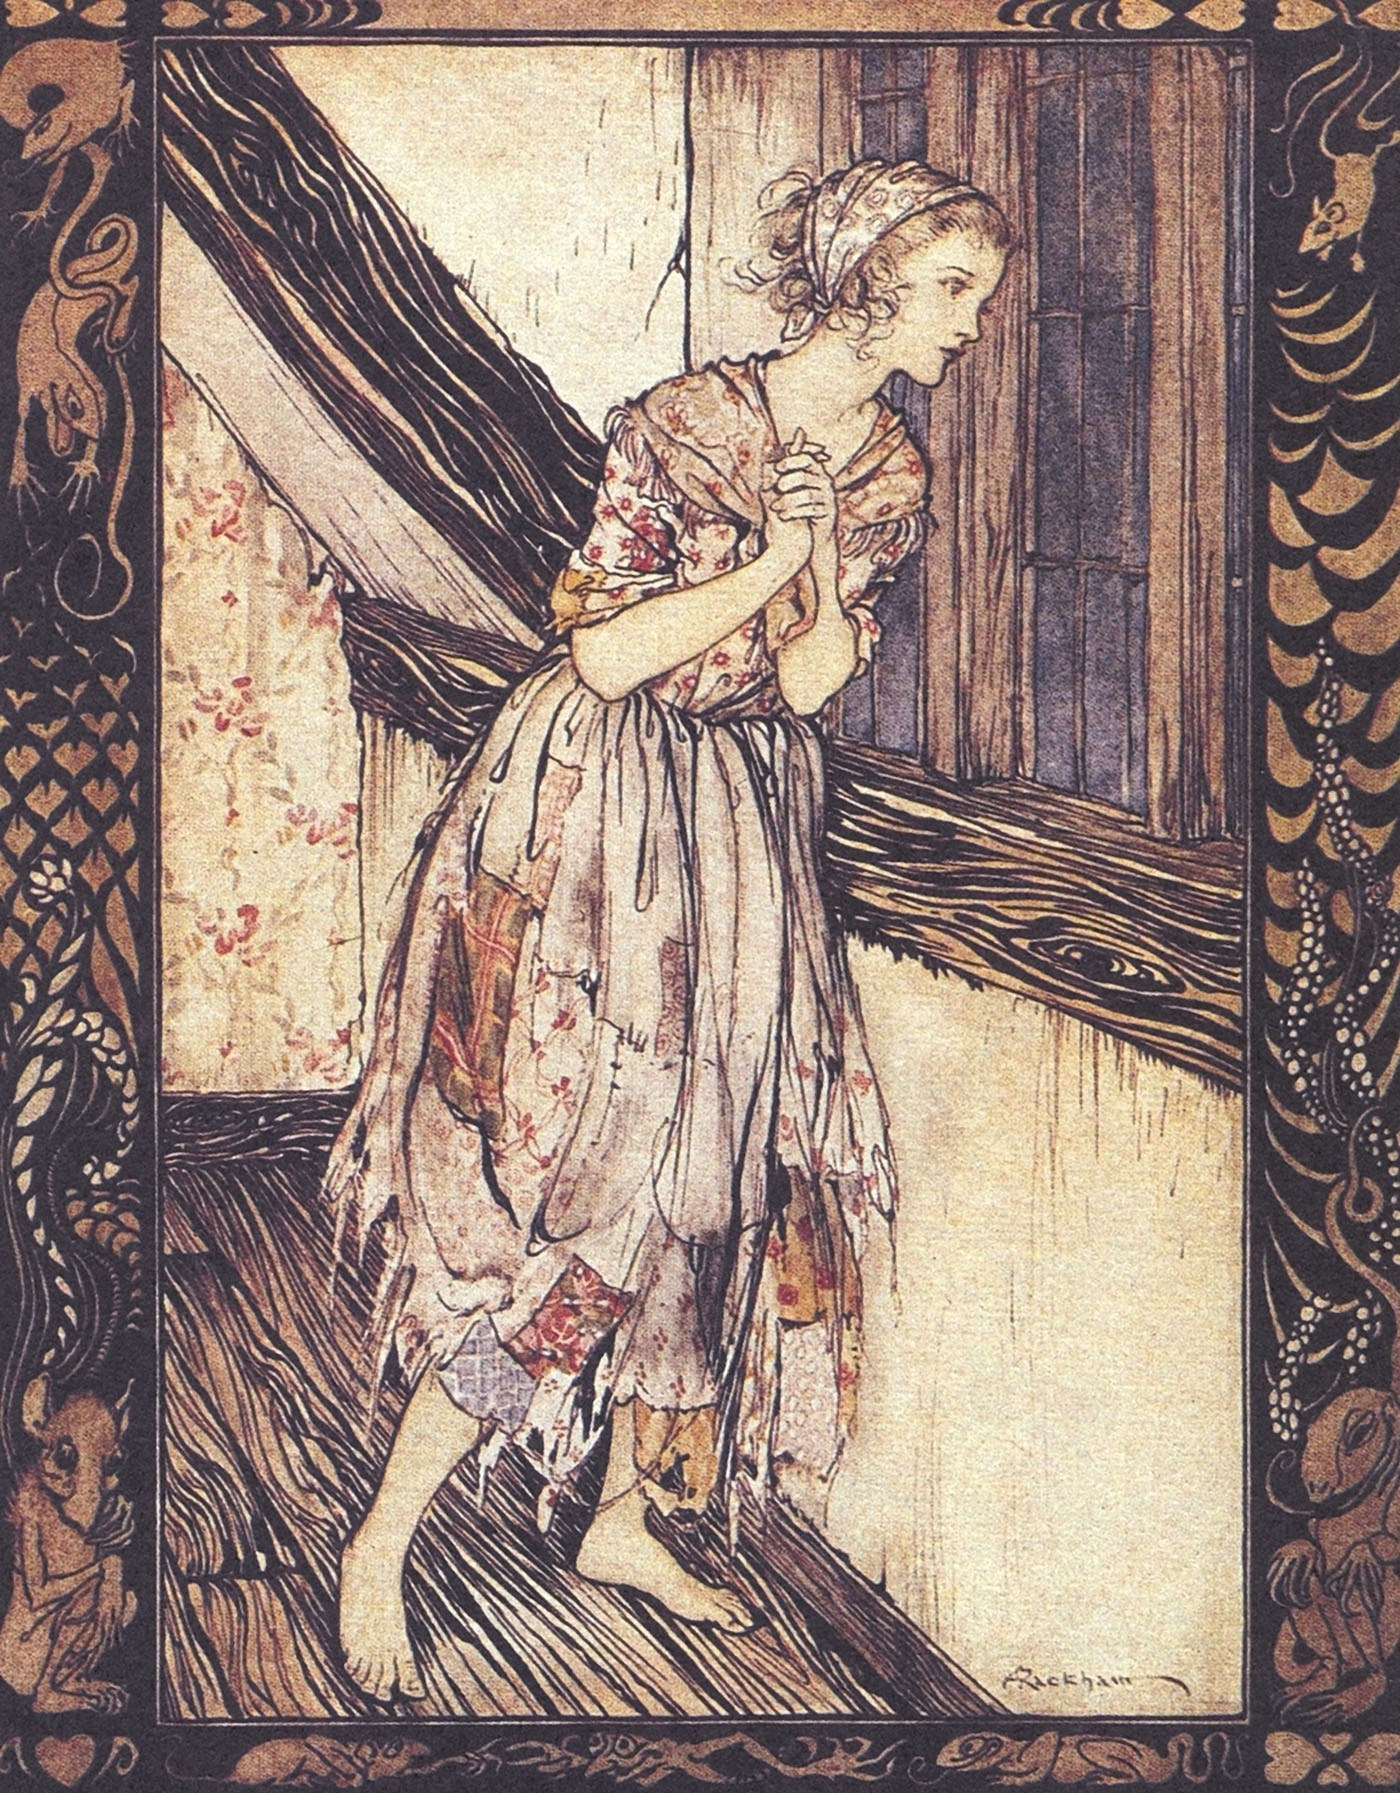 cinderella the grimm brothers v disney How different is anne sexton's cinderella to disney's version to the grimm brothers' version sexton vs disney's version - disney: father of cinderella.